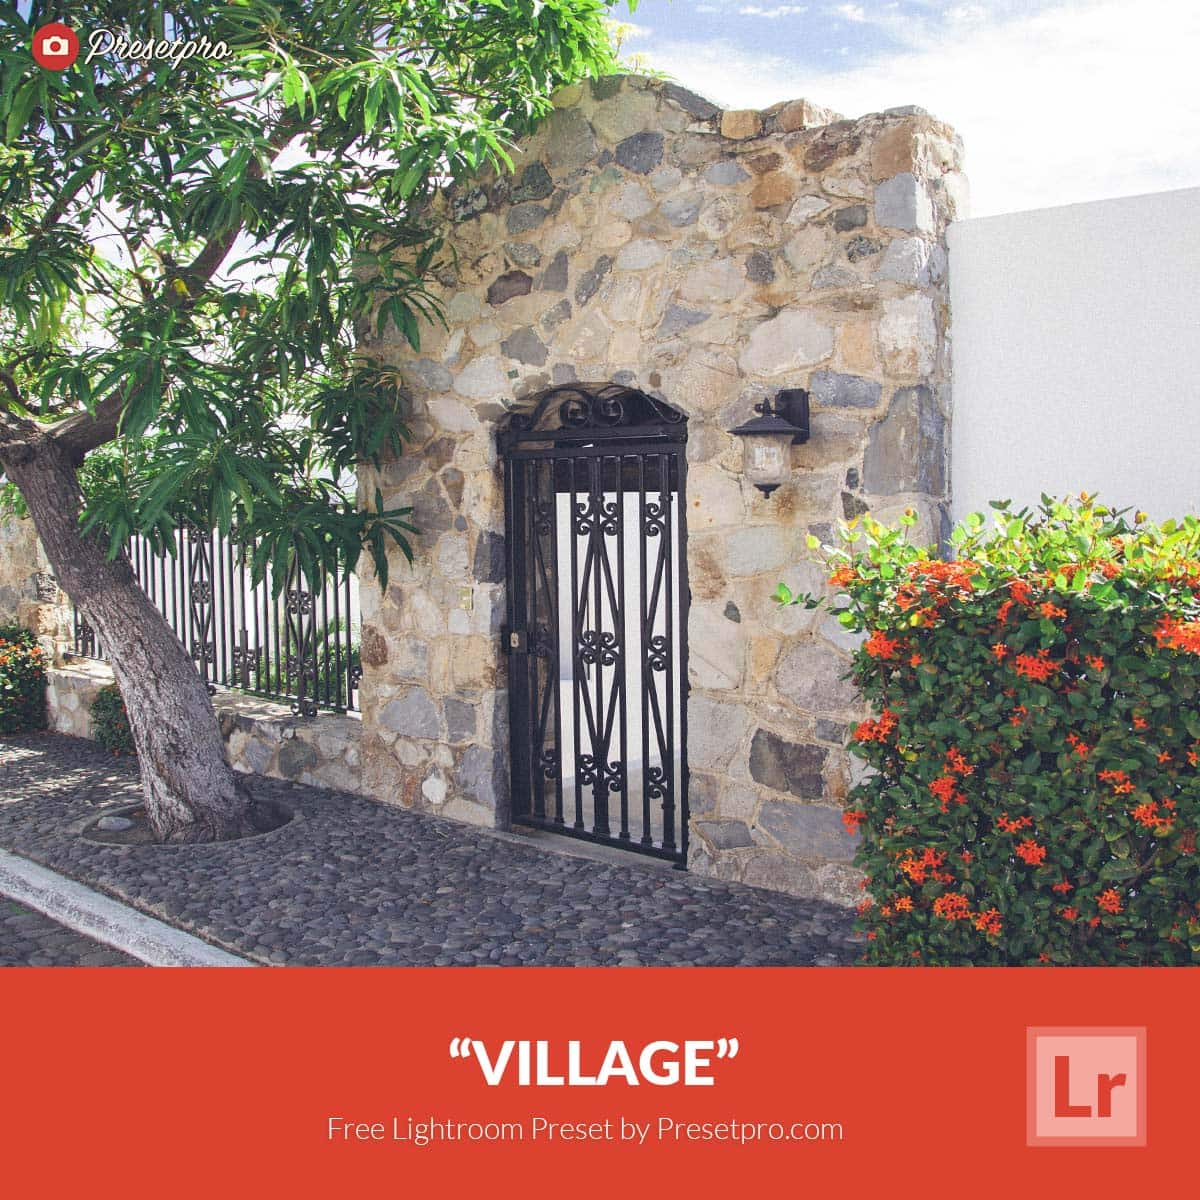 Free-Lightroom-Preset-Village-Presetpro.com